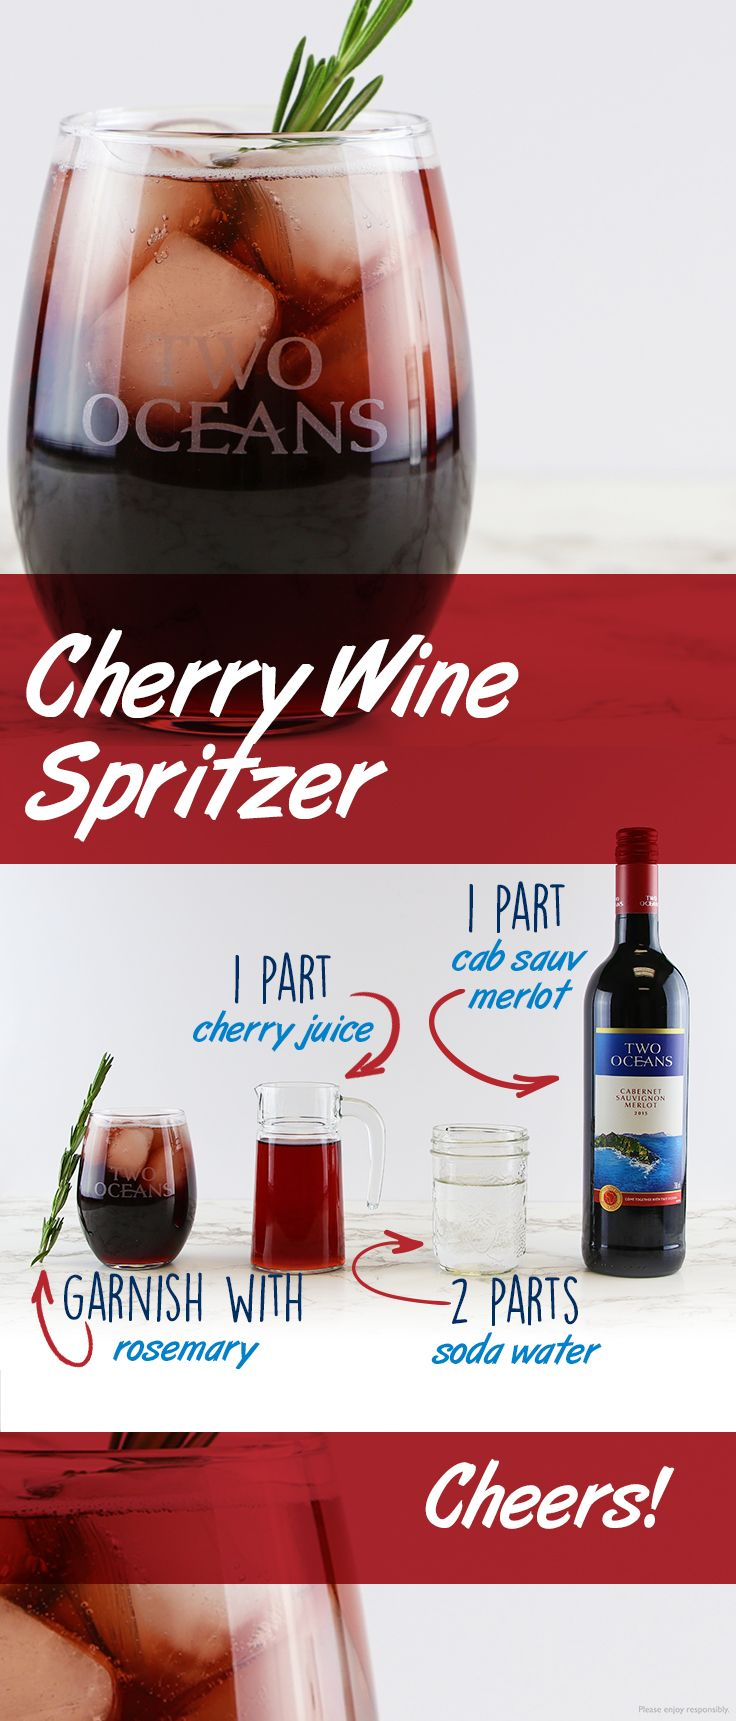 We Re Whipping Up A Batch Of Cherry Wine Spritzers For Holiday Entertaining Garnished With A Sprig Of Rosemary We Fruity Cocktails Wine Spritzer Cherry Wine